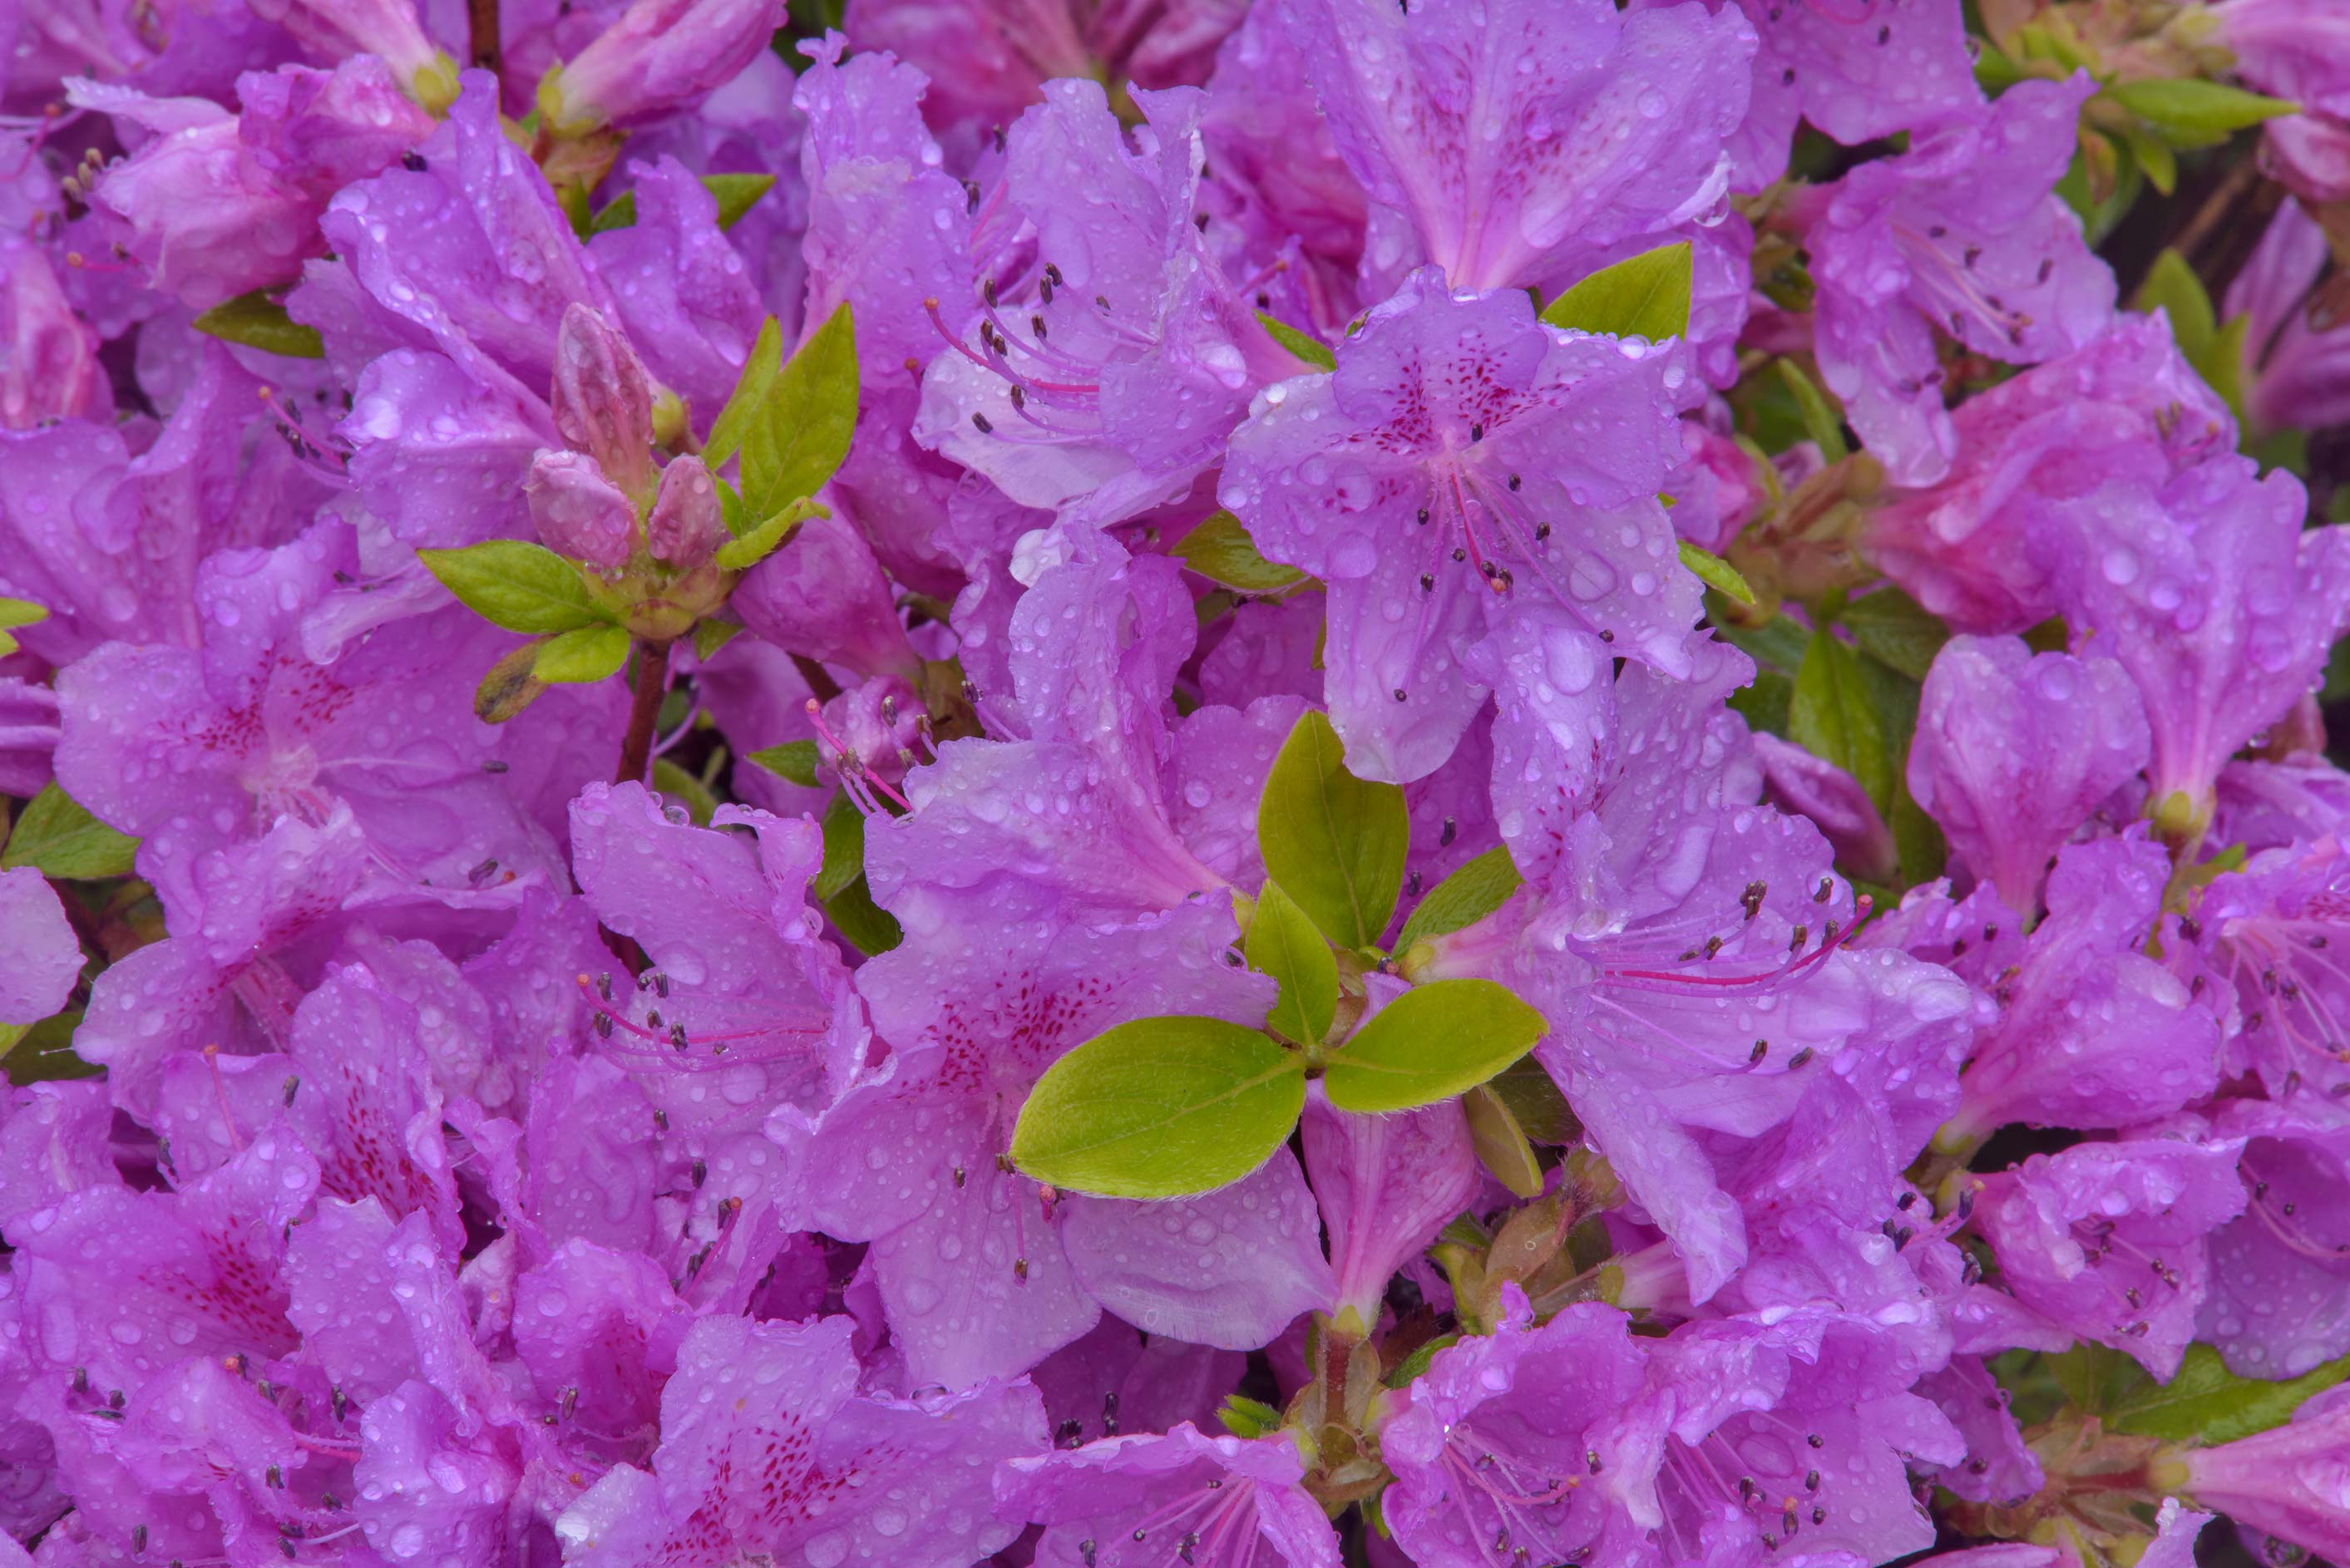 Azalea Rhododendron haaga in Botanic Gardens of...Institute. St.Petersburg, Russia